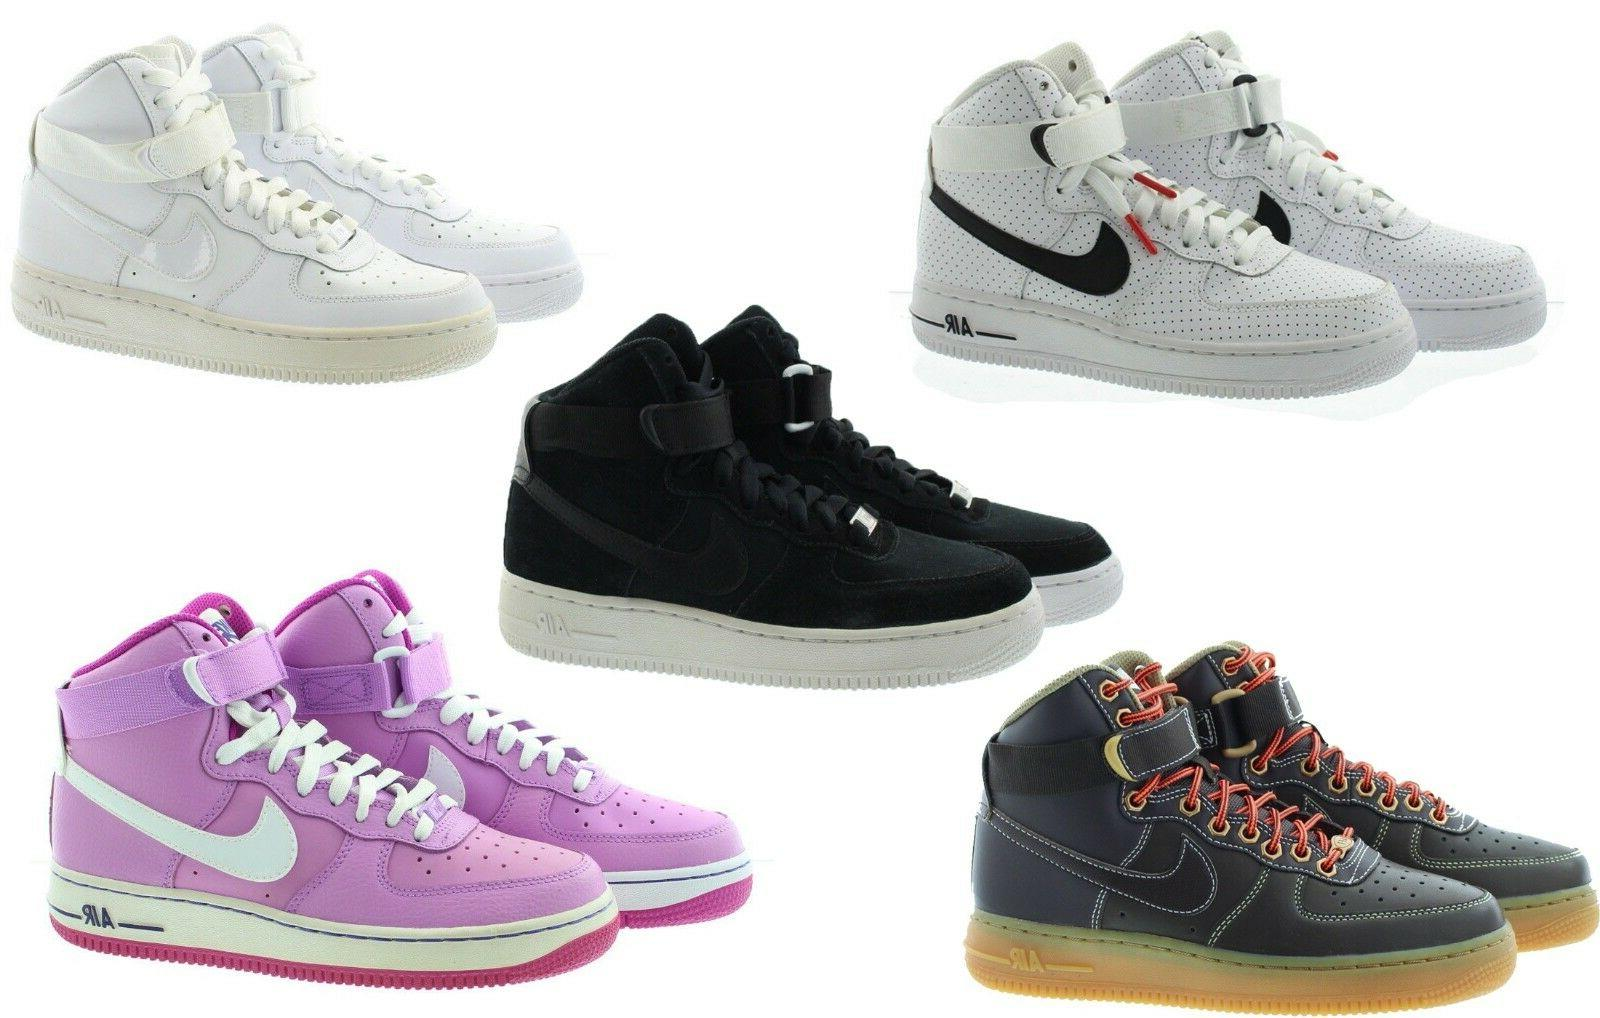 653998 kids youth boys air force 1